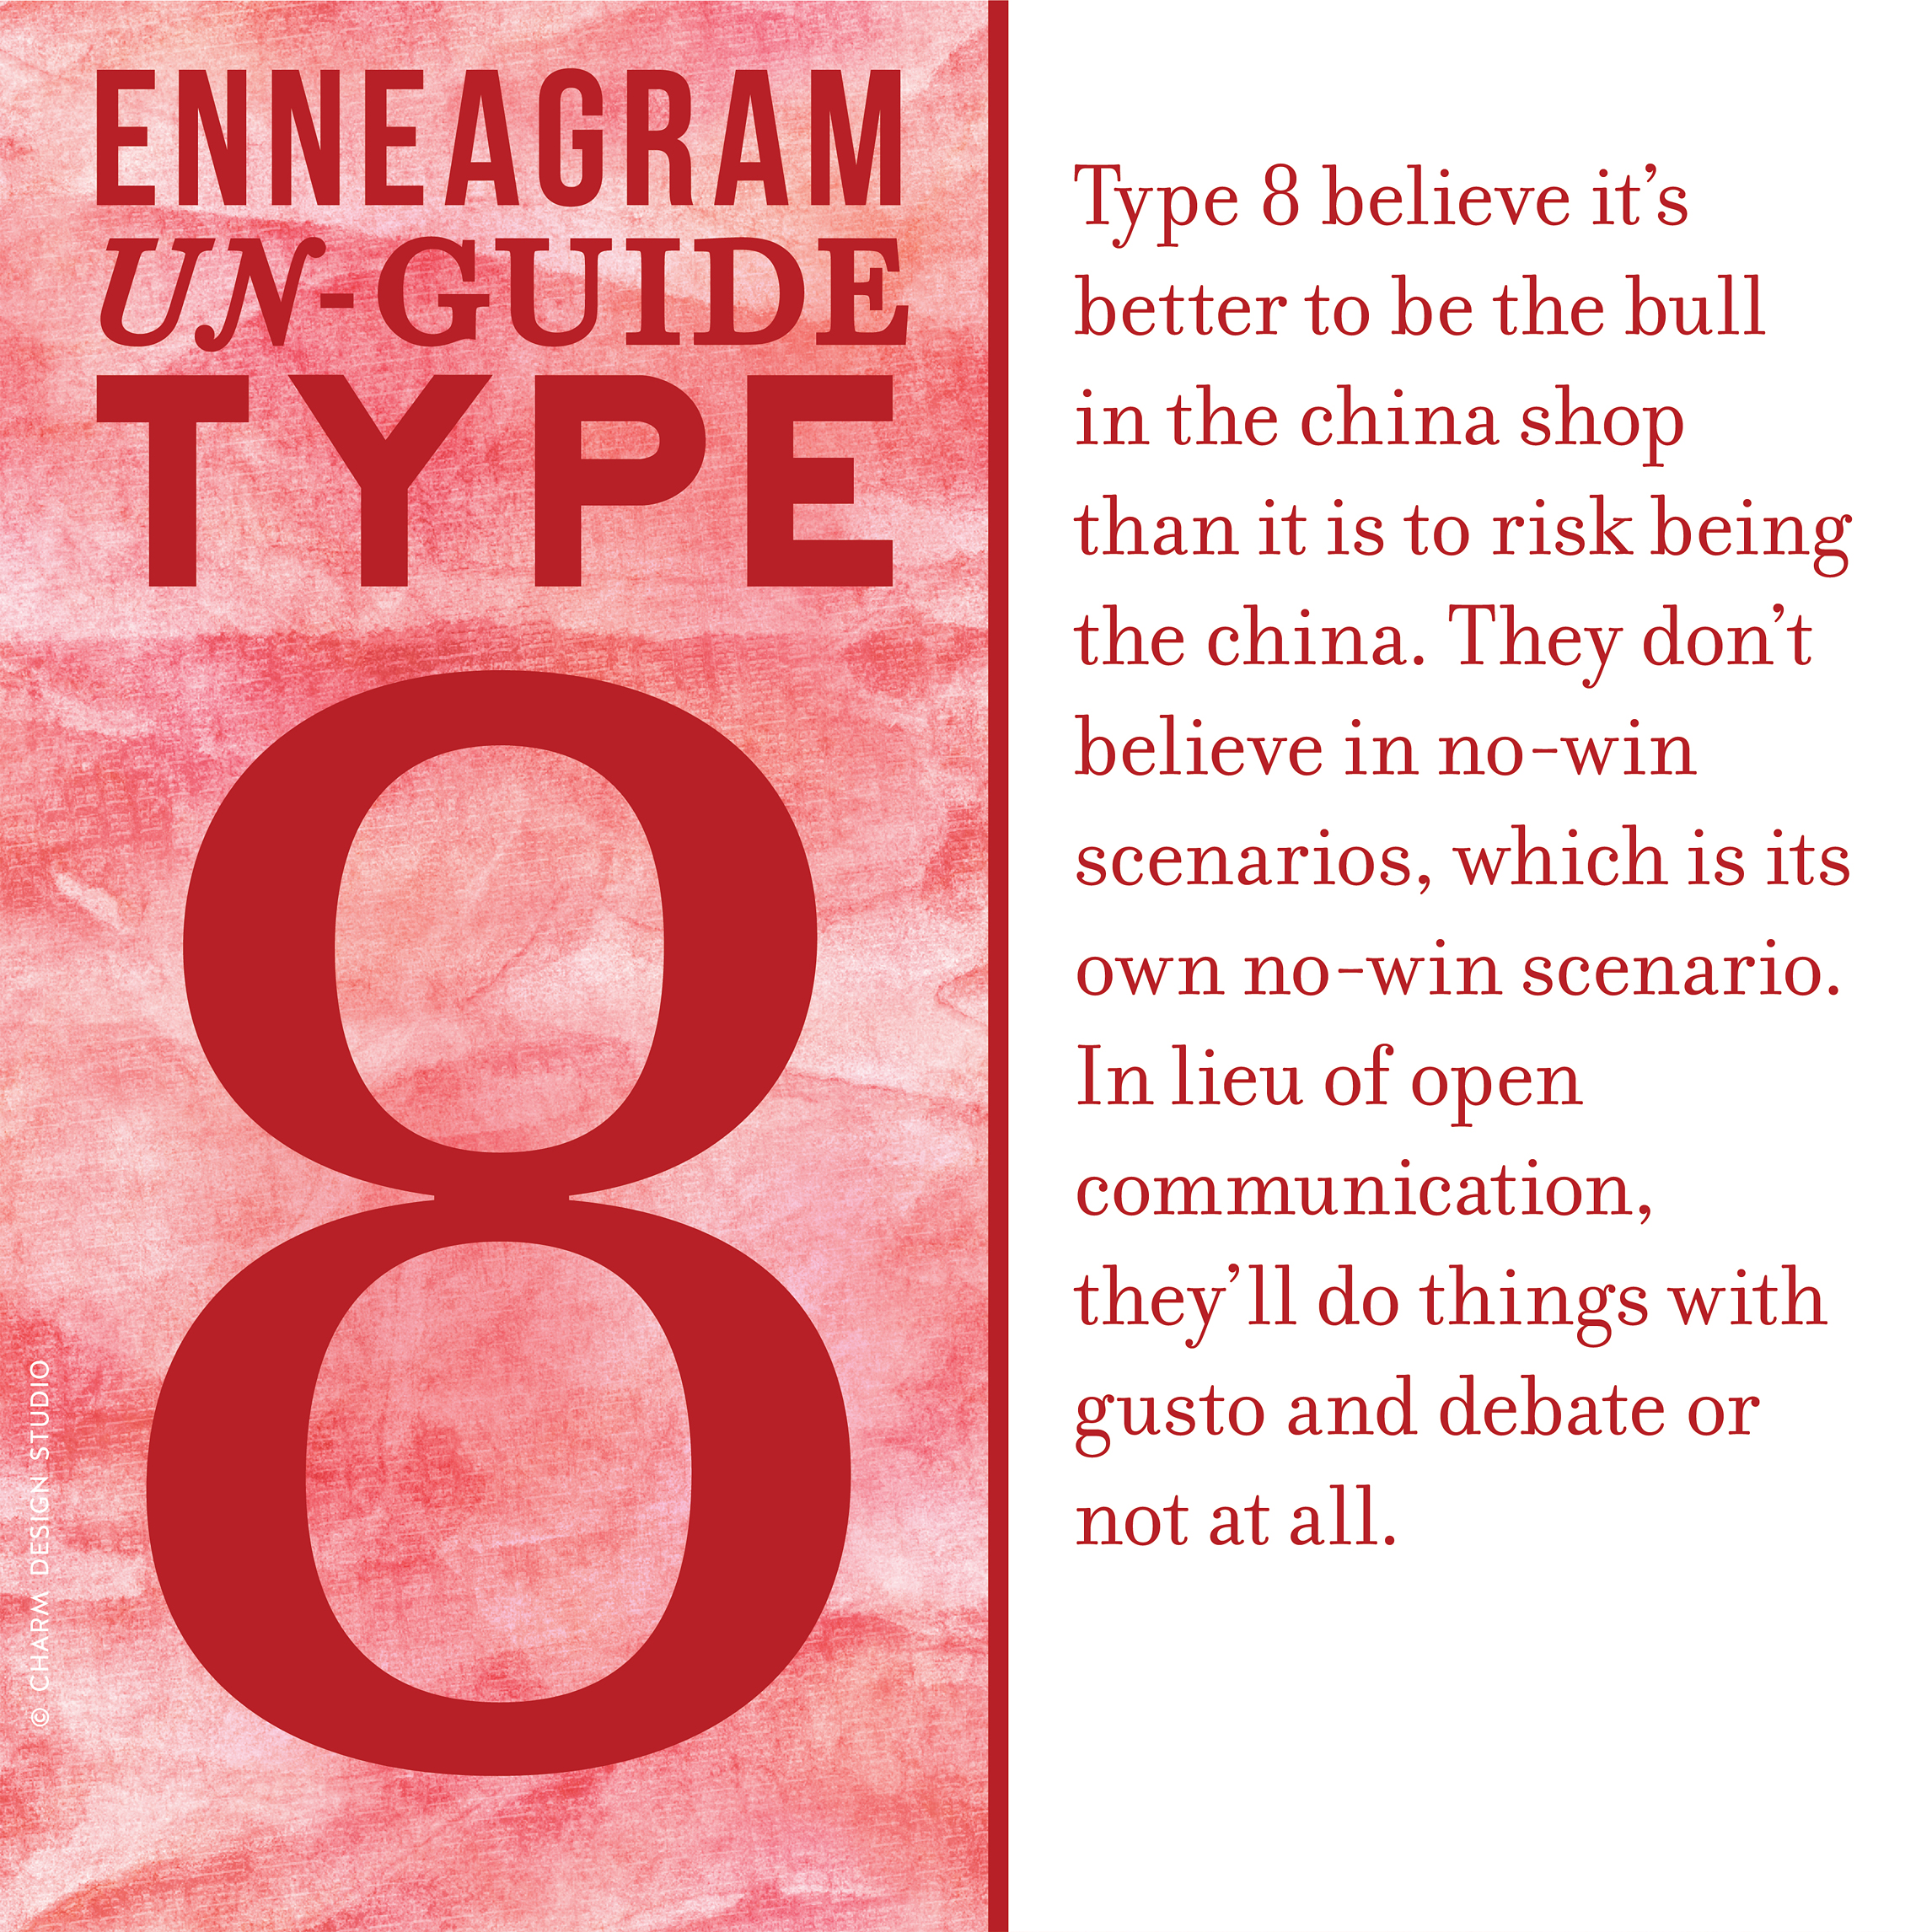 Enneagram Un-Guide: Type 8 believe it's better to be the bull in the china shop than it is to risk being the china. They don't believe in no-win scenarios, which is its own no-win scenario. In lieu of open communication, they'll do things with gusto and debate or not at all. / Design and words © Charm Design Studio